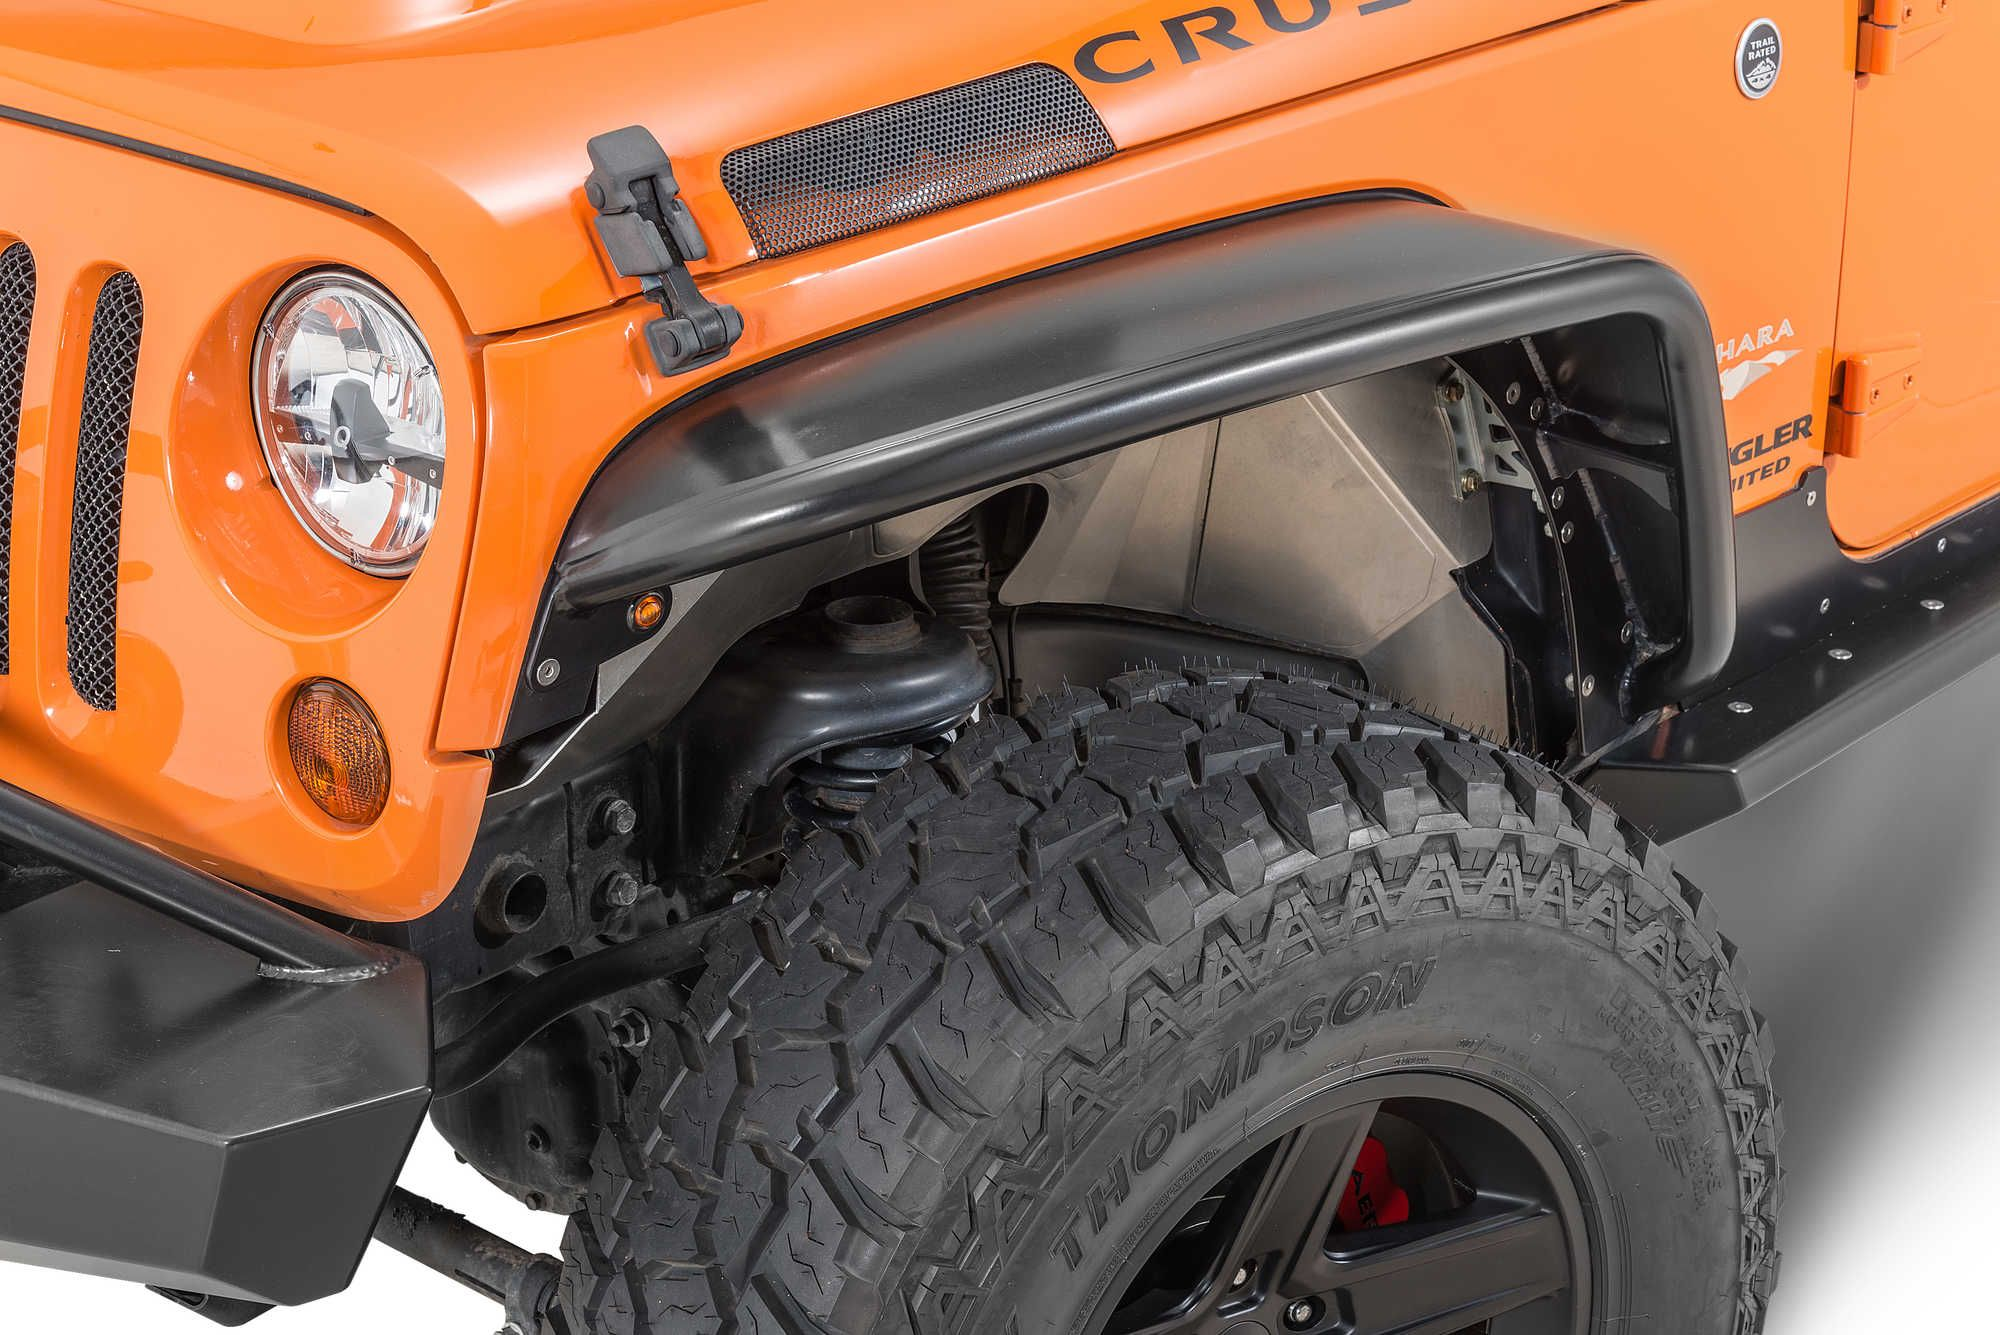 5b5924beb35a1 The Jeep JK s thin sheet metal fenders and stock plastic flares are among  the most vulnerable body components when traversing the trail. The Poison  Spyder ...